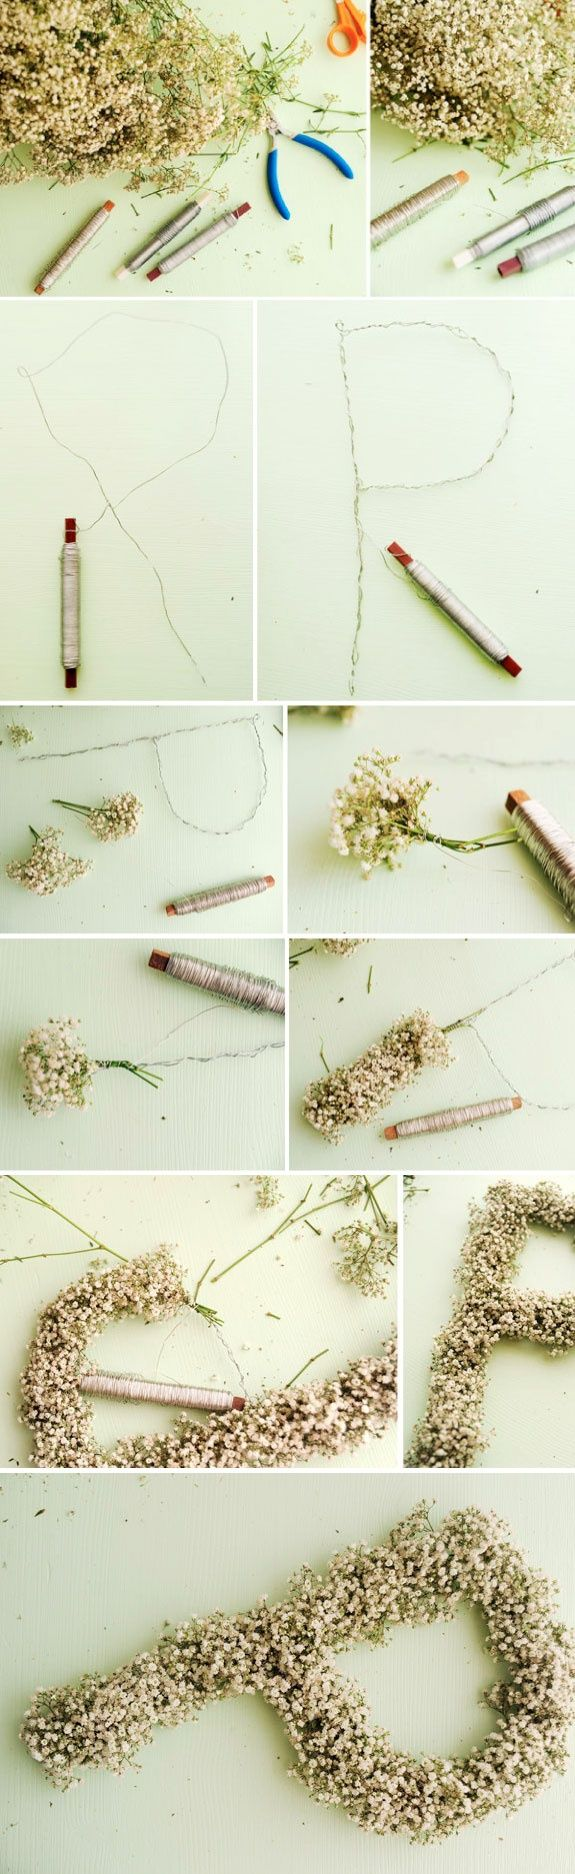 babiesbreath letters. Medium-thin floral wire, thinner floral wire, wire cutters, and bunches of babies breath. Can use leaves or other flowers in place.